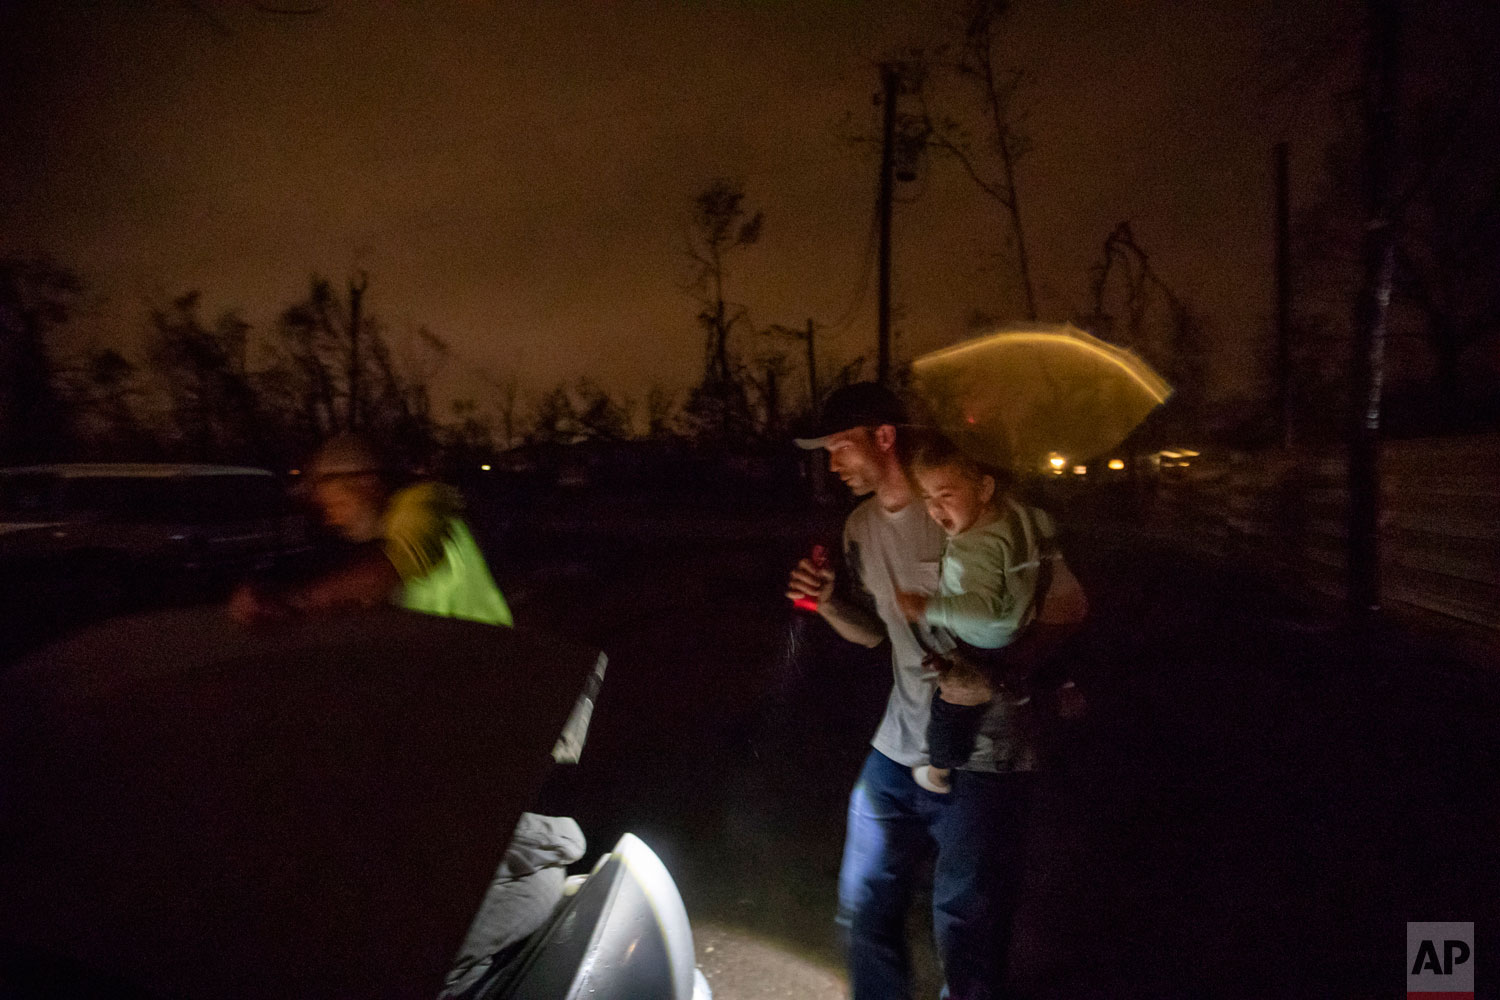 "Twenty-month-old Neala Clark cries as her mother's fiancé, Gary LaPlant, loads their personal belongings from the tent they're living in into a car taking them to a halfway home LaPlant found for them in the middle of a rain storm in Youngstown, Fla, Wednesday, Jan. 23, 2019. After the family spent the night at the halfway home, they planned to return the next day to live in their tent in the Summer's backyard where they feel more comfortable. ""It's such a positive environment out there despite the mess everyone had gone through,"" said LaPlant's fiancee, Mystie Gregory. (AP Photo/David Goldman)"